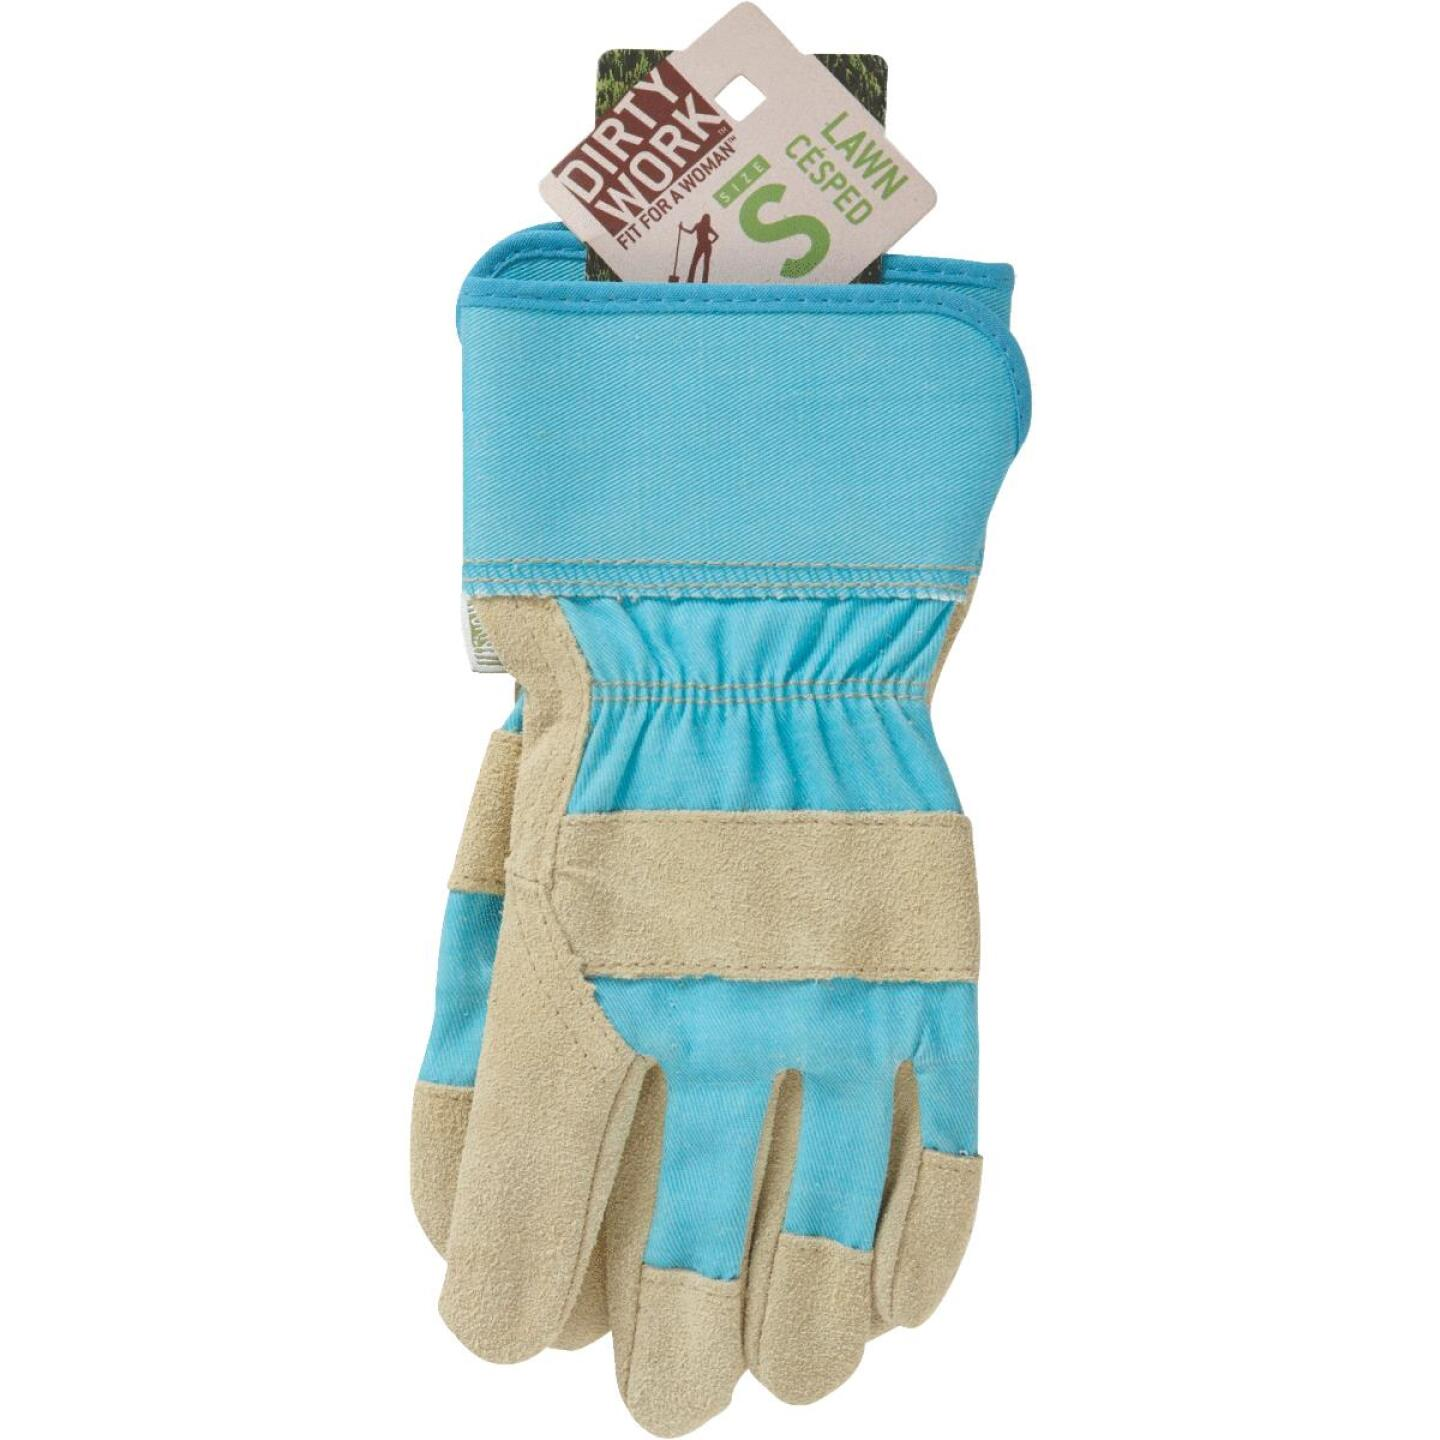 West Chester Protective Gear Dirty Work Women's Small Leather Work Glove Image 2